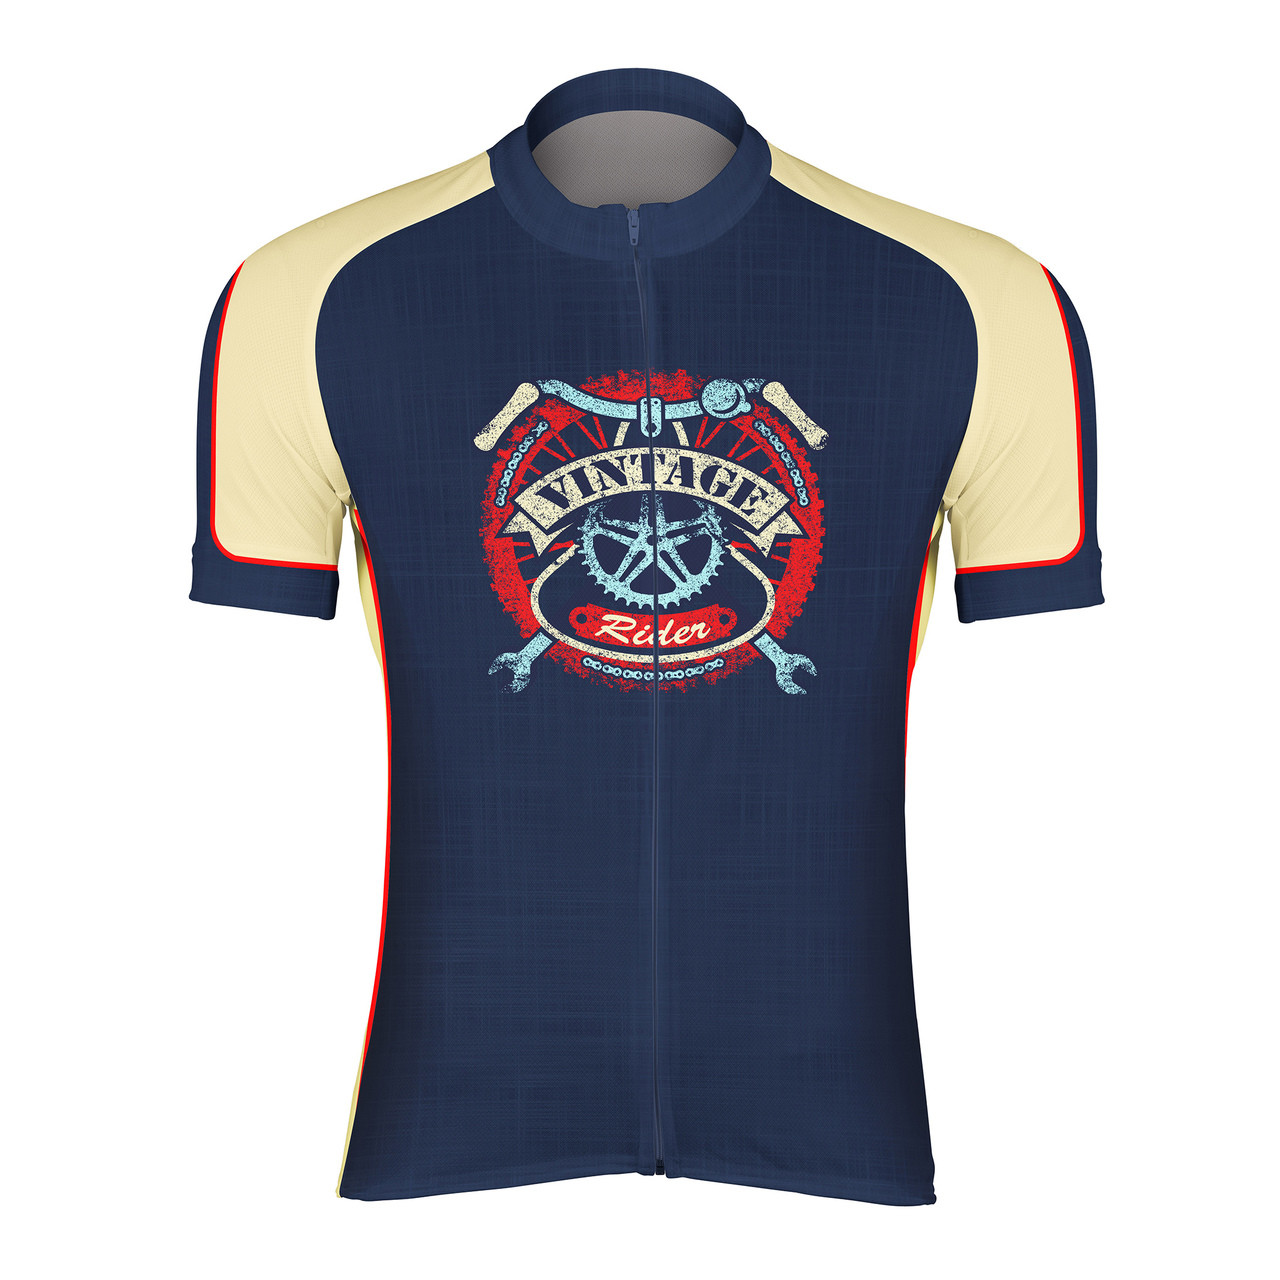 dadc1a9df892f Men s Cycling Jersey Vintage Rider Peak 1 Sports